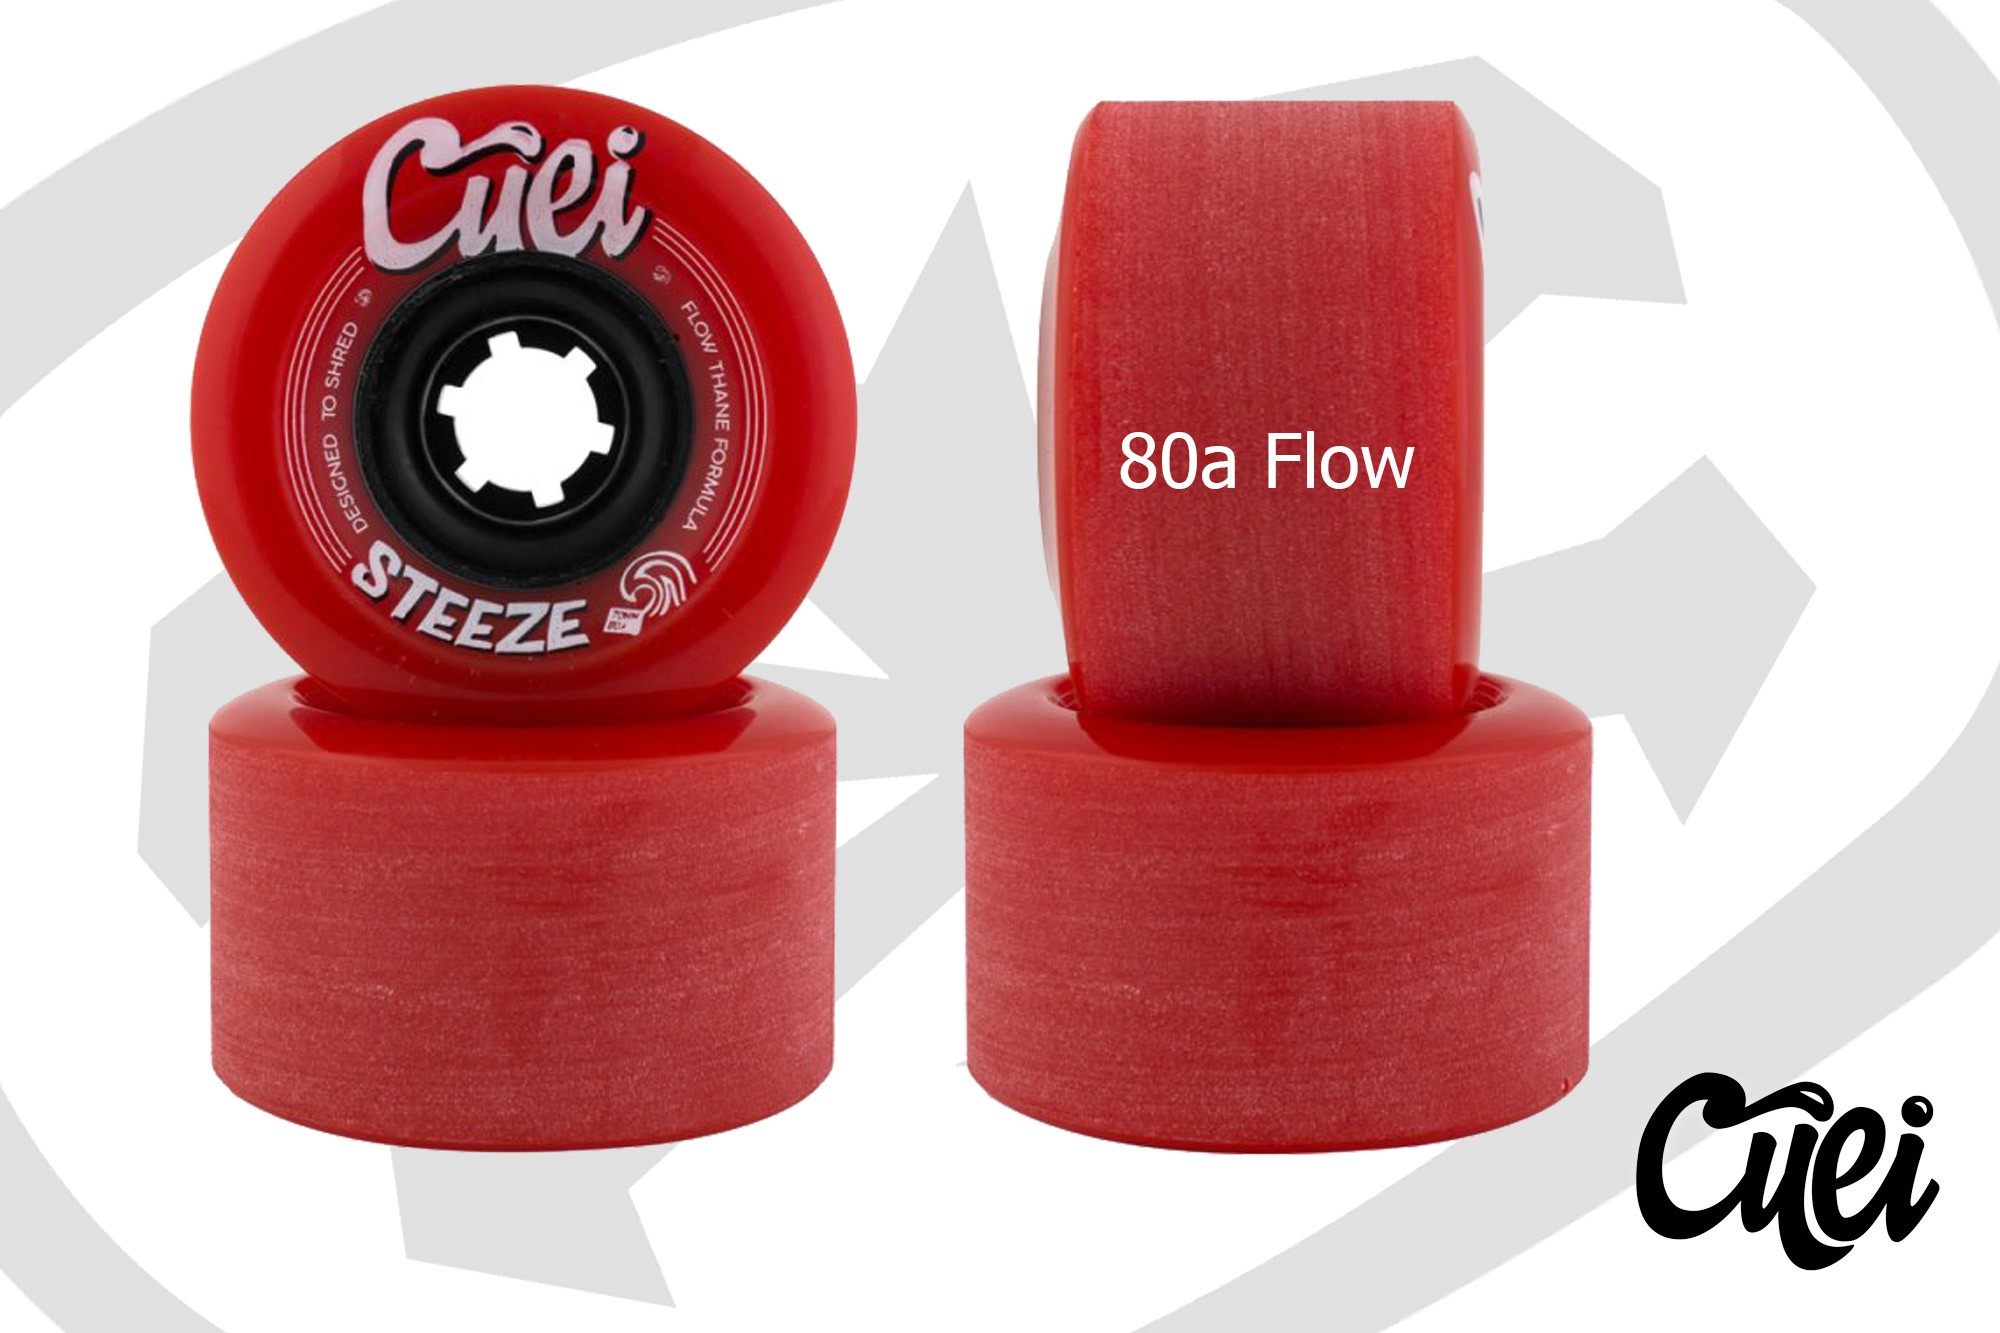 Red 80a Flow thane